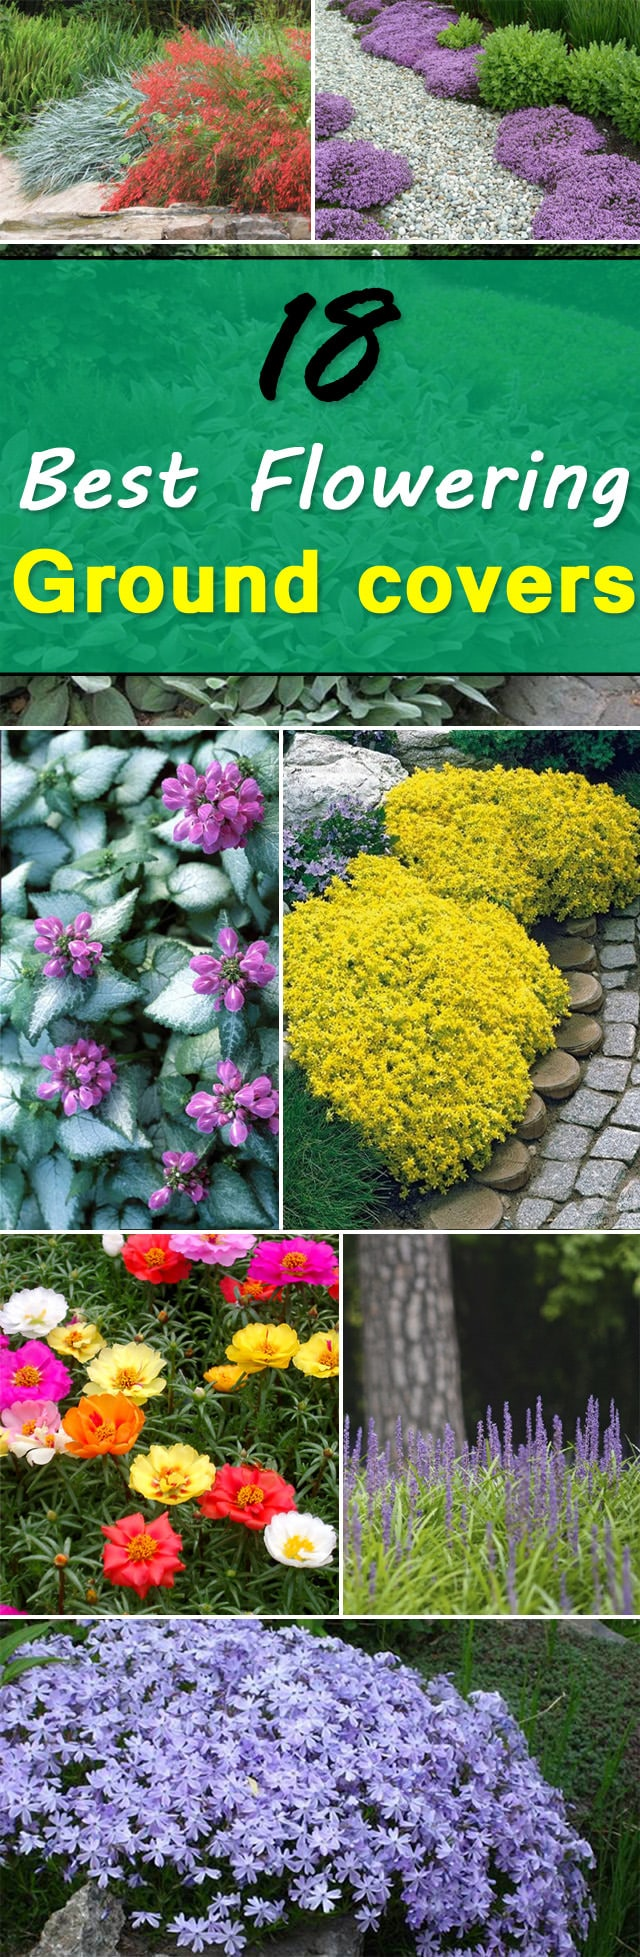 18 Best Flowering Ground Cover Plants Balcony Garden Web